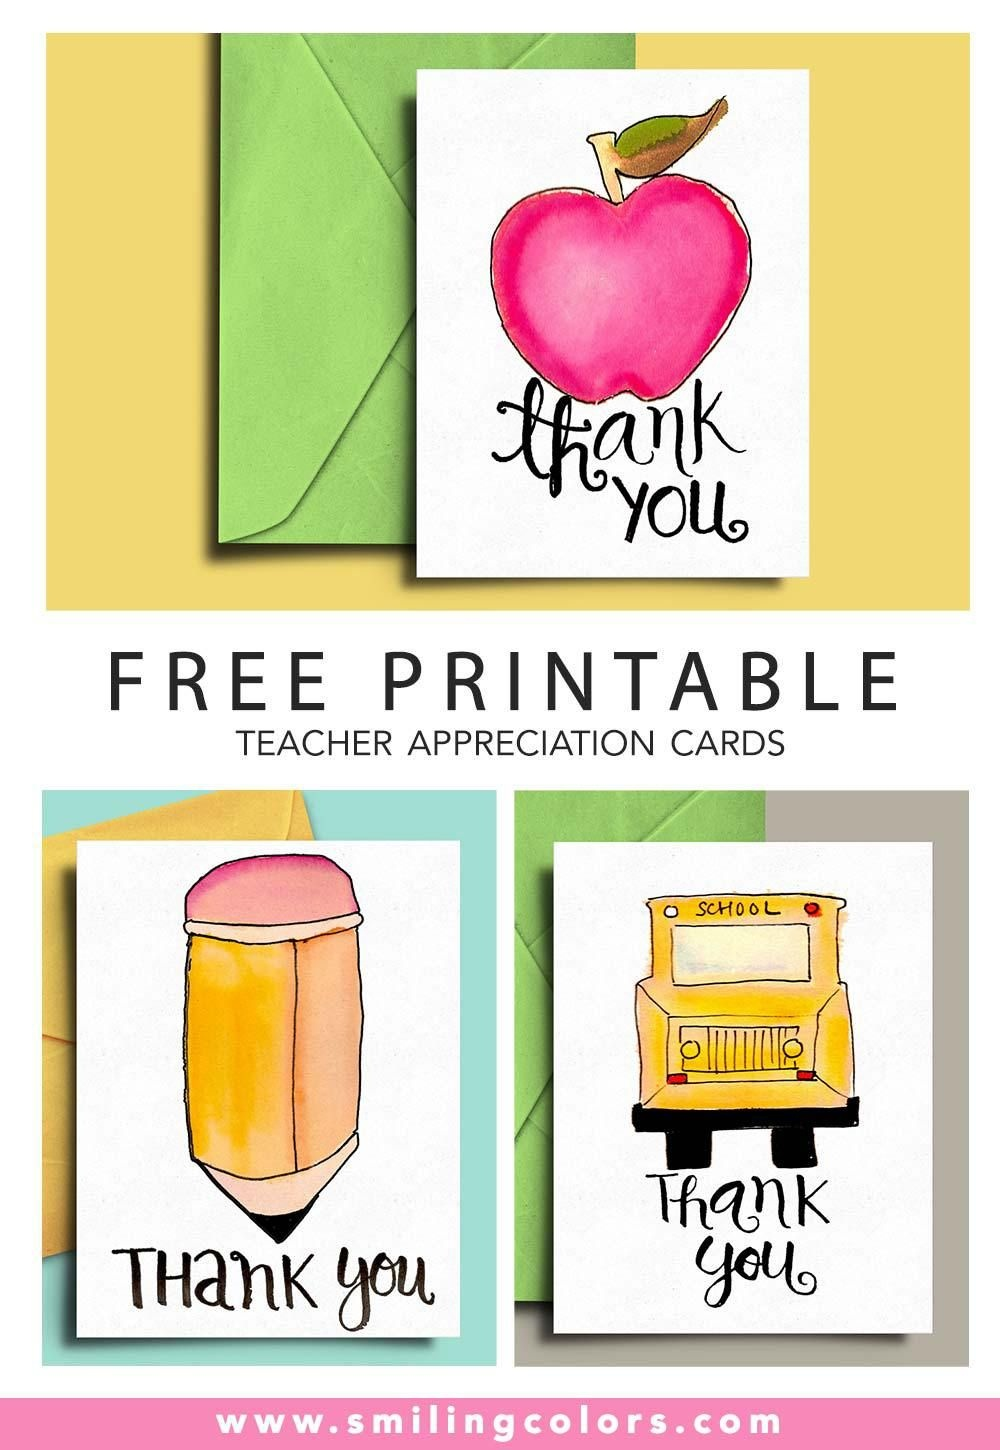 Thank You Card For Teacher And School Bus Driver With Free - Free Printable Teacher Appreciation Cards To Color